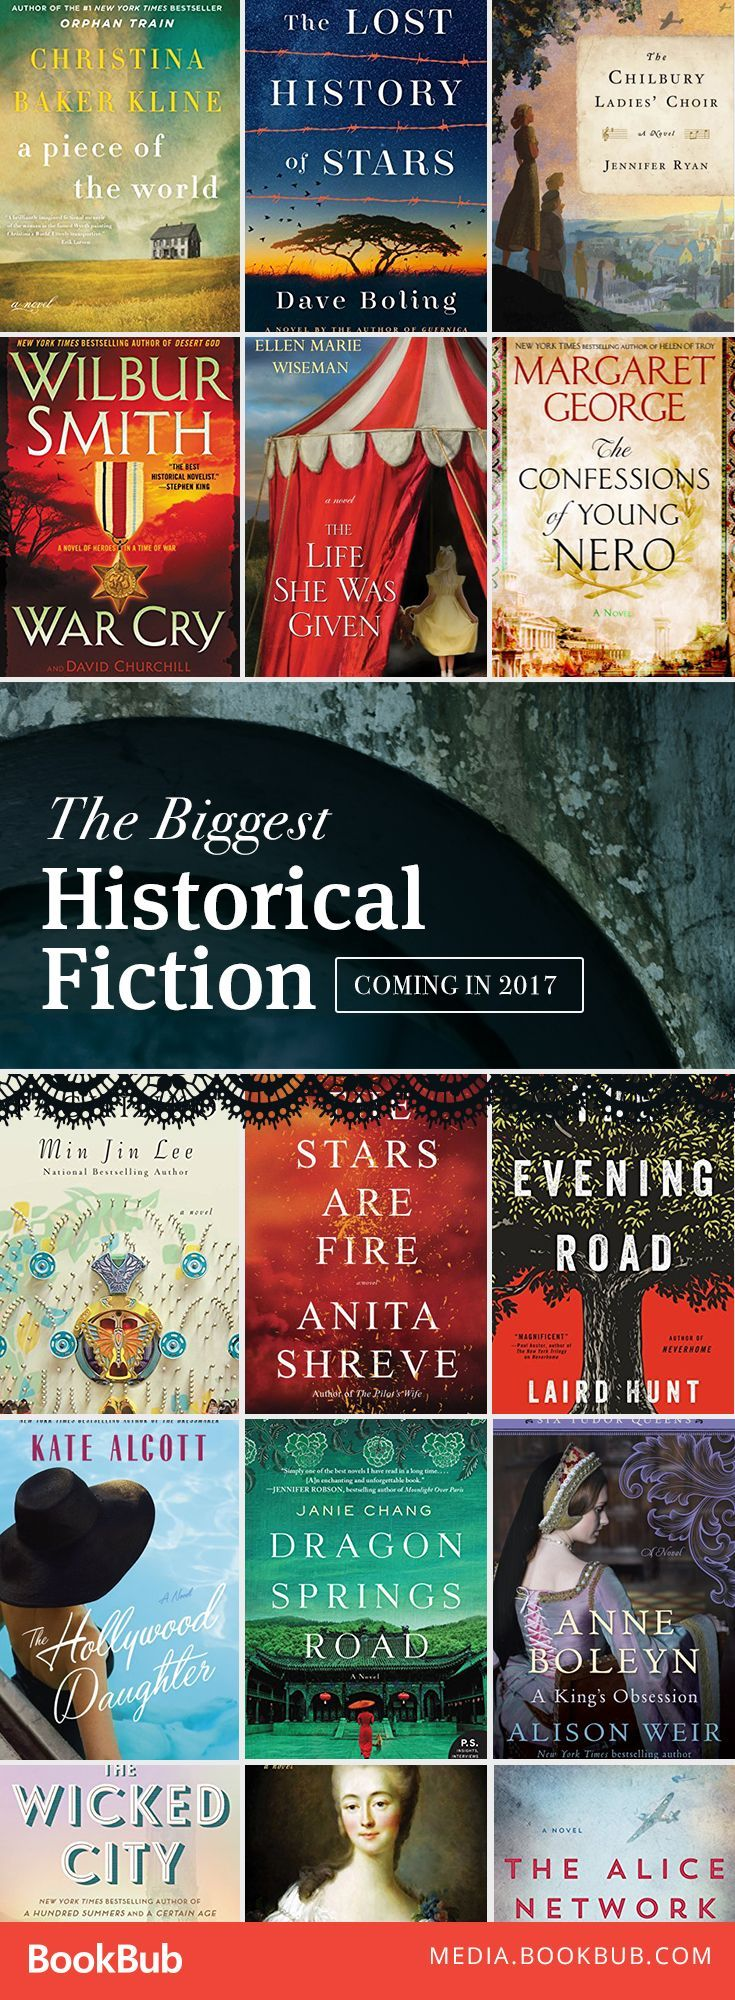 The biggest historical fiction books to read this year, including titles from Kate Alcott and Alison Weir.